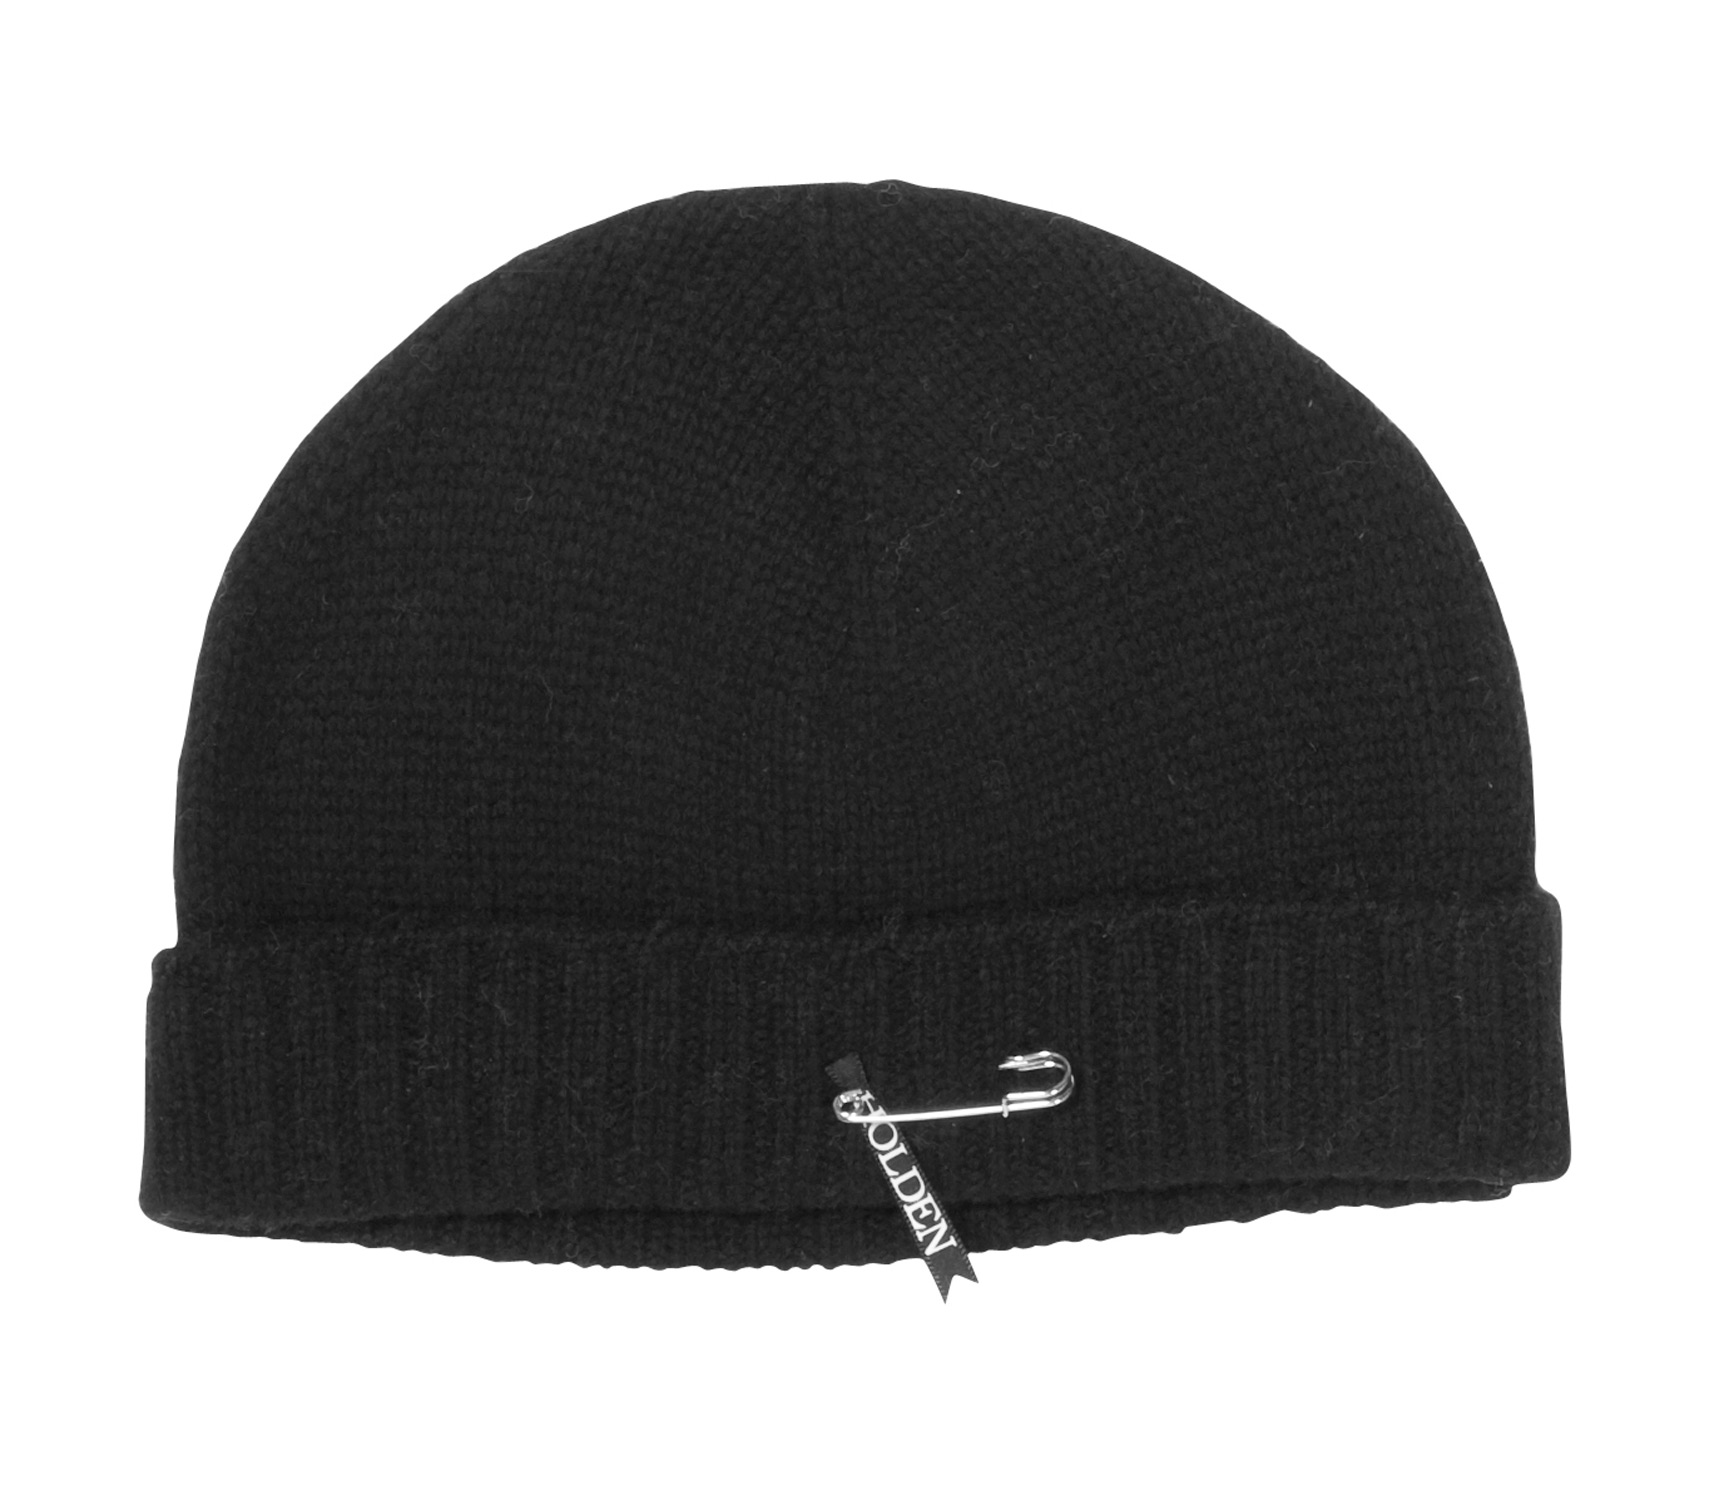 When your tongue in stuck on a frozen stop sign pole this winter, atleast your head will be warm inside of this beanie from Holden.* Mid-weight jersey knit body * 2 x 1 rib at cuff * Detailed with a removable Holden safety pin logo * 30% wool / 70% Acrylic - $16.95